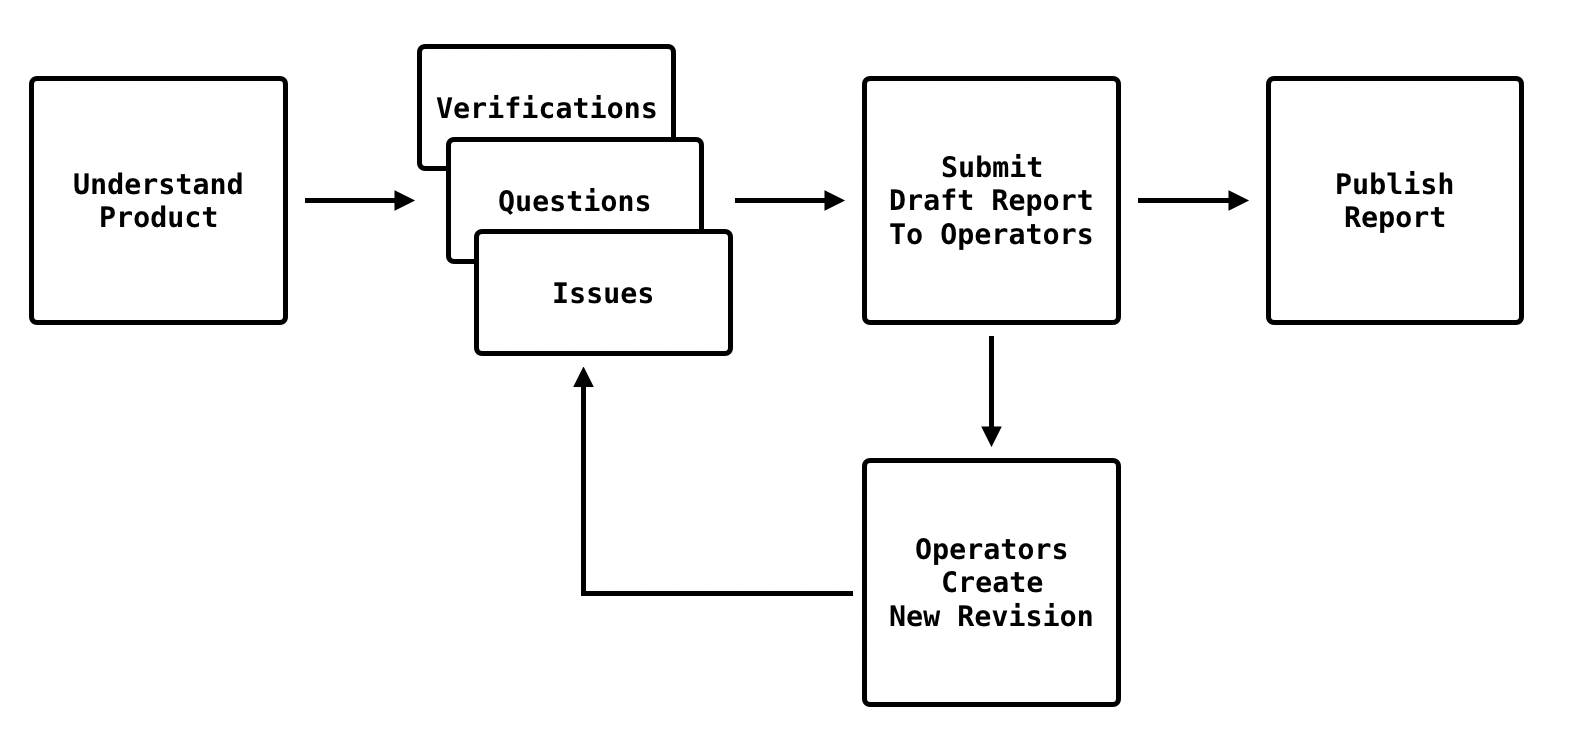 Auditing process diagram